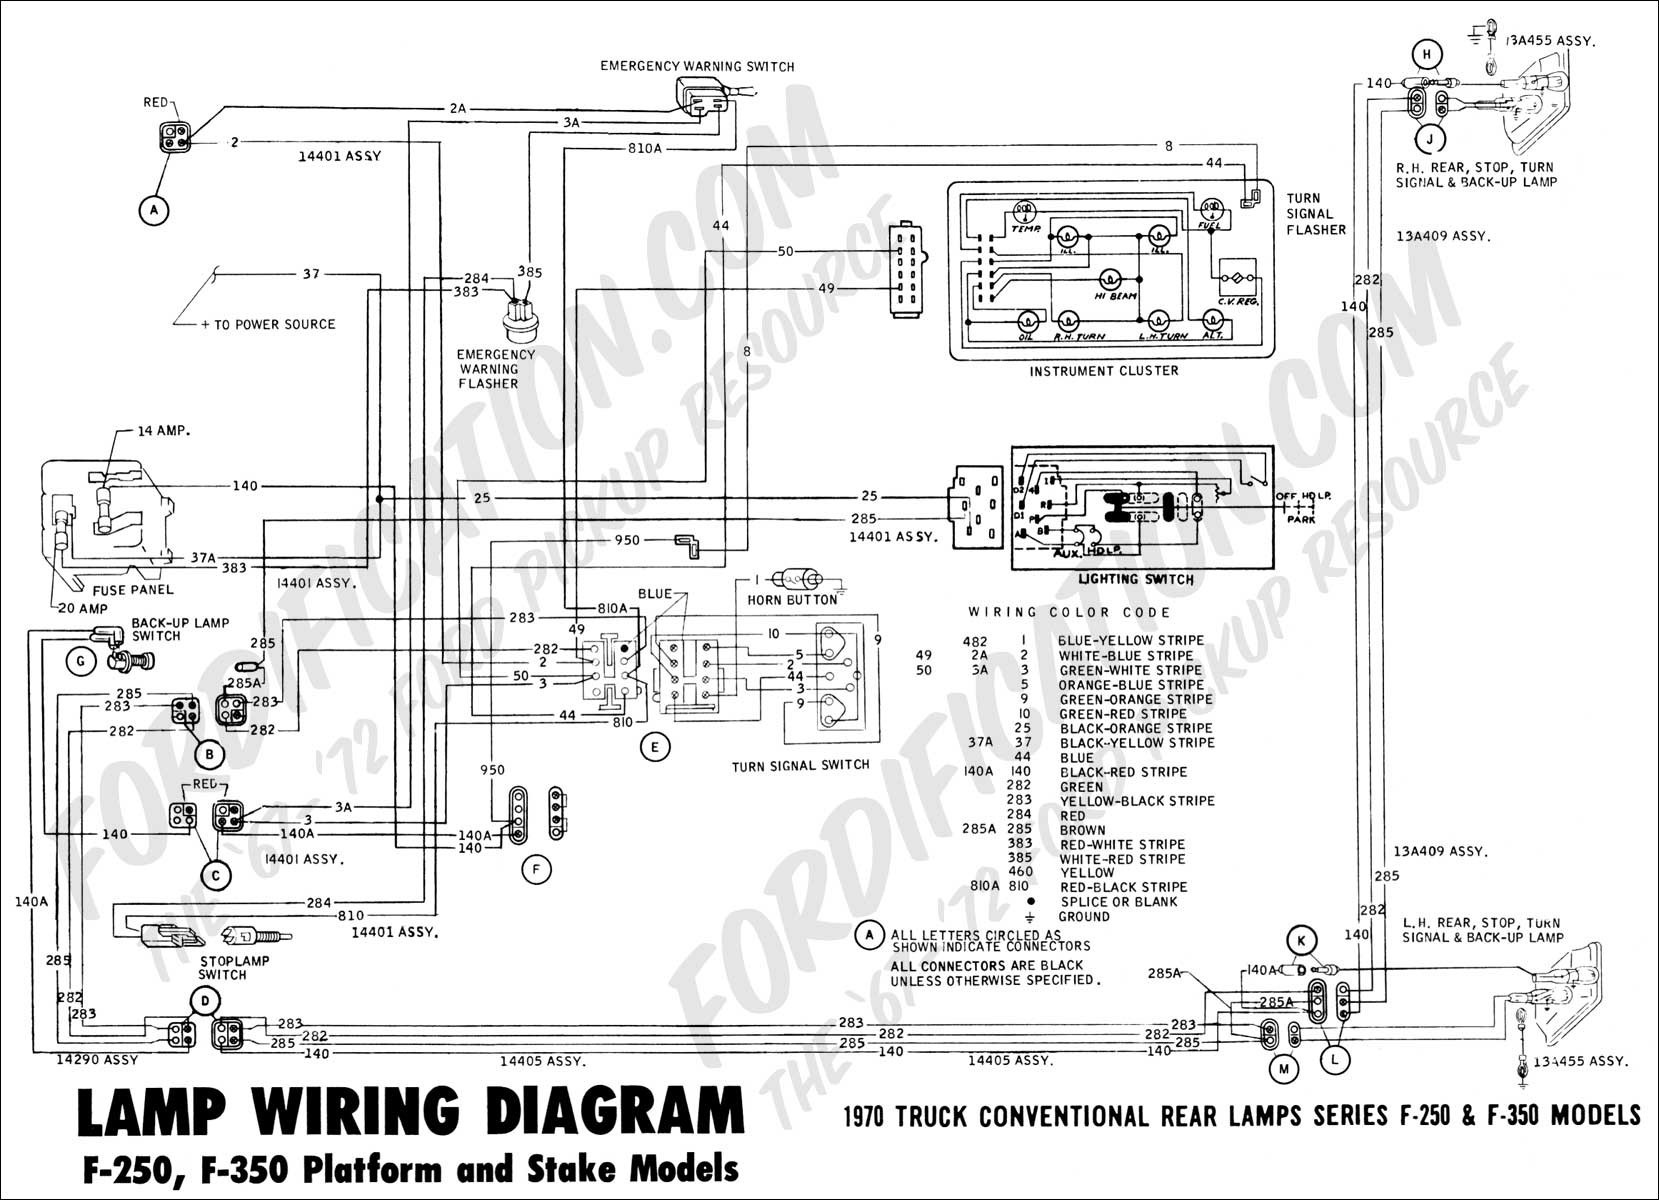 tail light wiring diagram ford f150 my wiring diagram rh detoxicrecenze com 2014 ford f150 brake light wiring diagram tail light wiring diagram ford f150